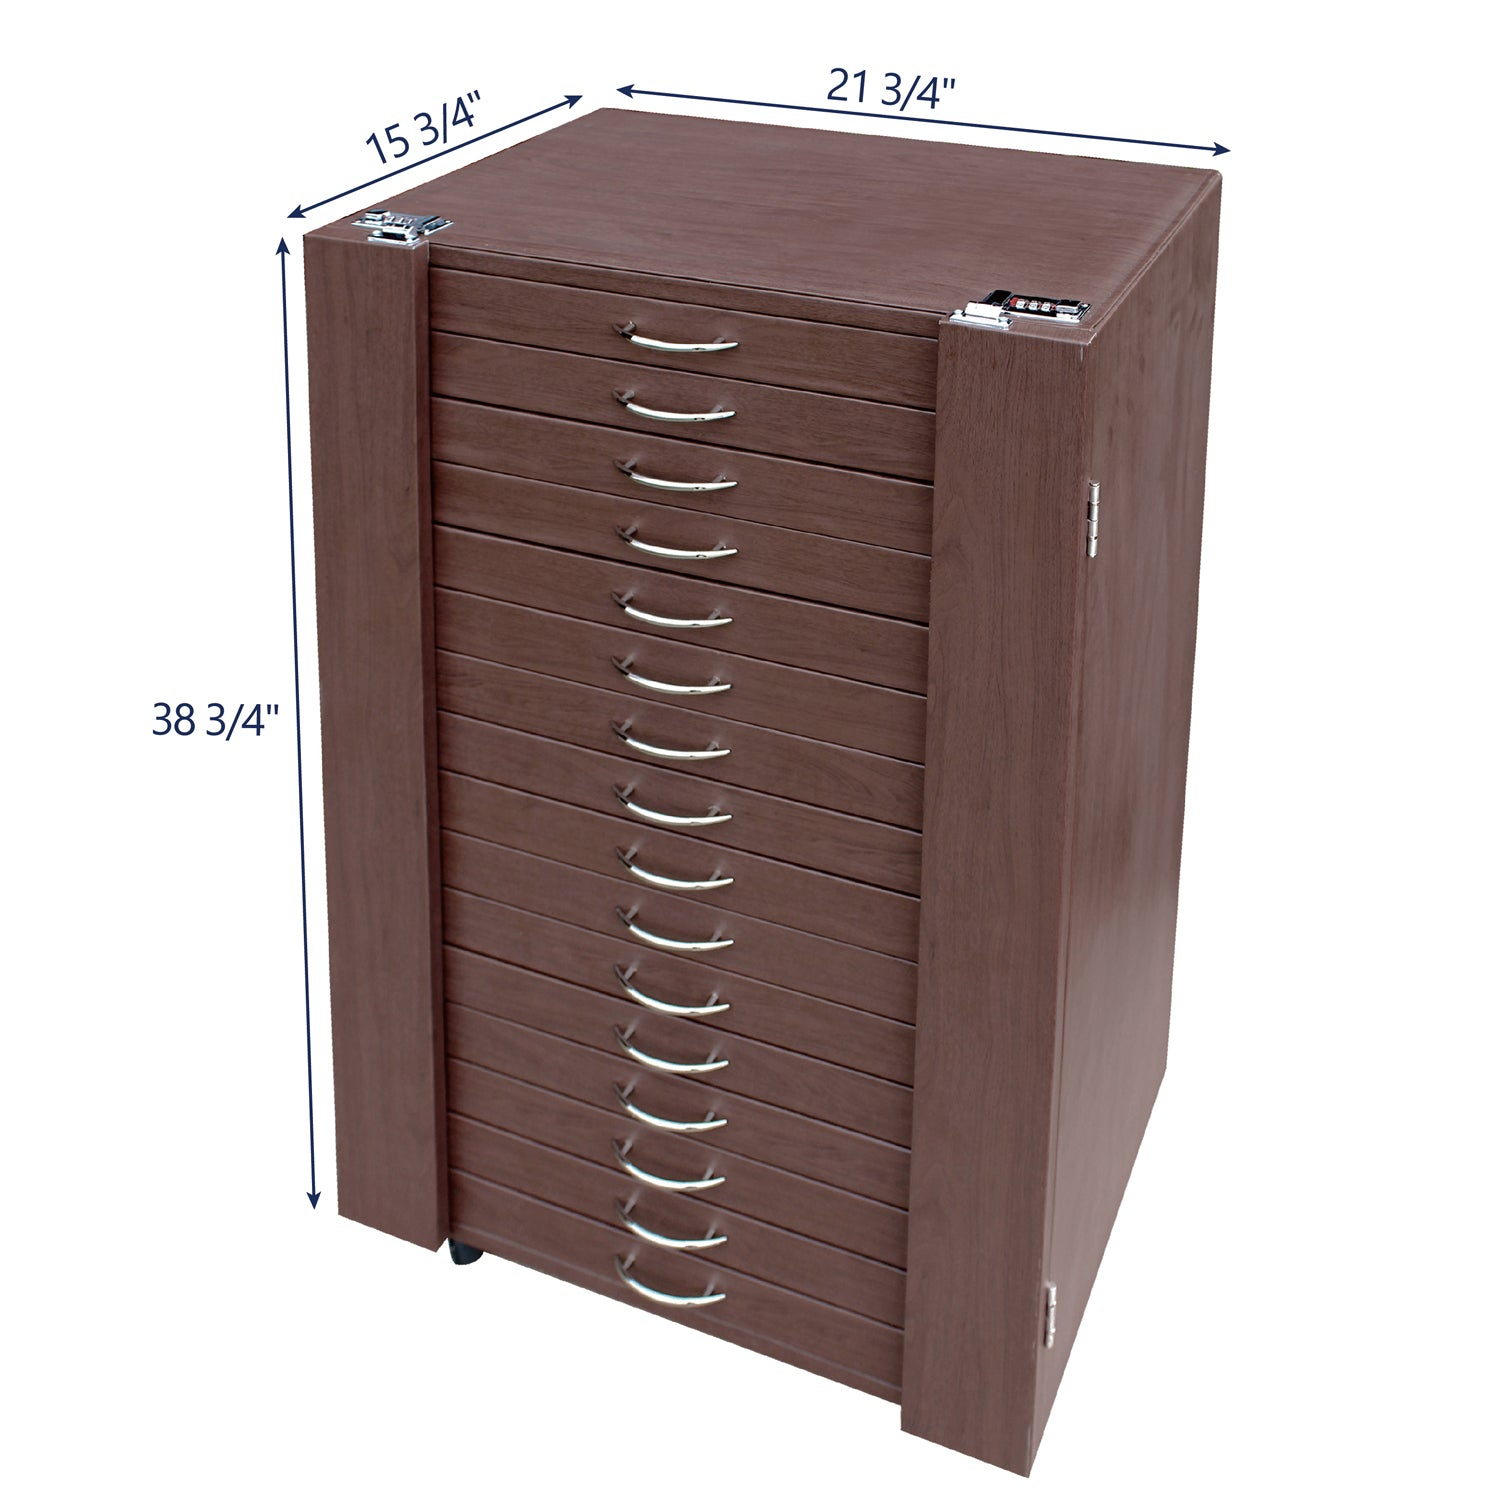 #D306-16BR  288 Pairs Frame Storage Cabinet- Eyewear & Optical glasses Display - with Lock and Wheels | APEX International